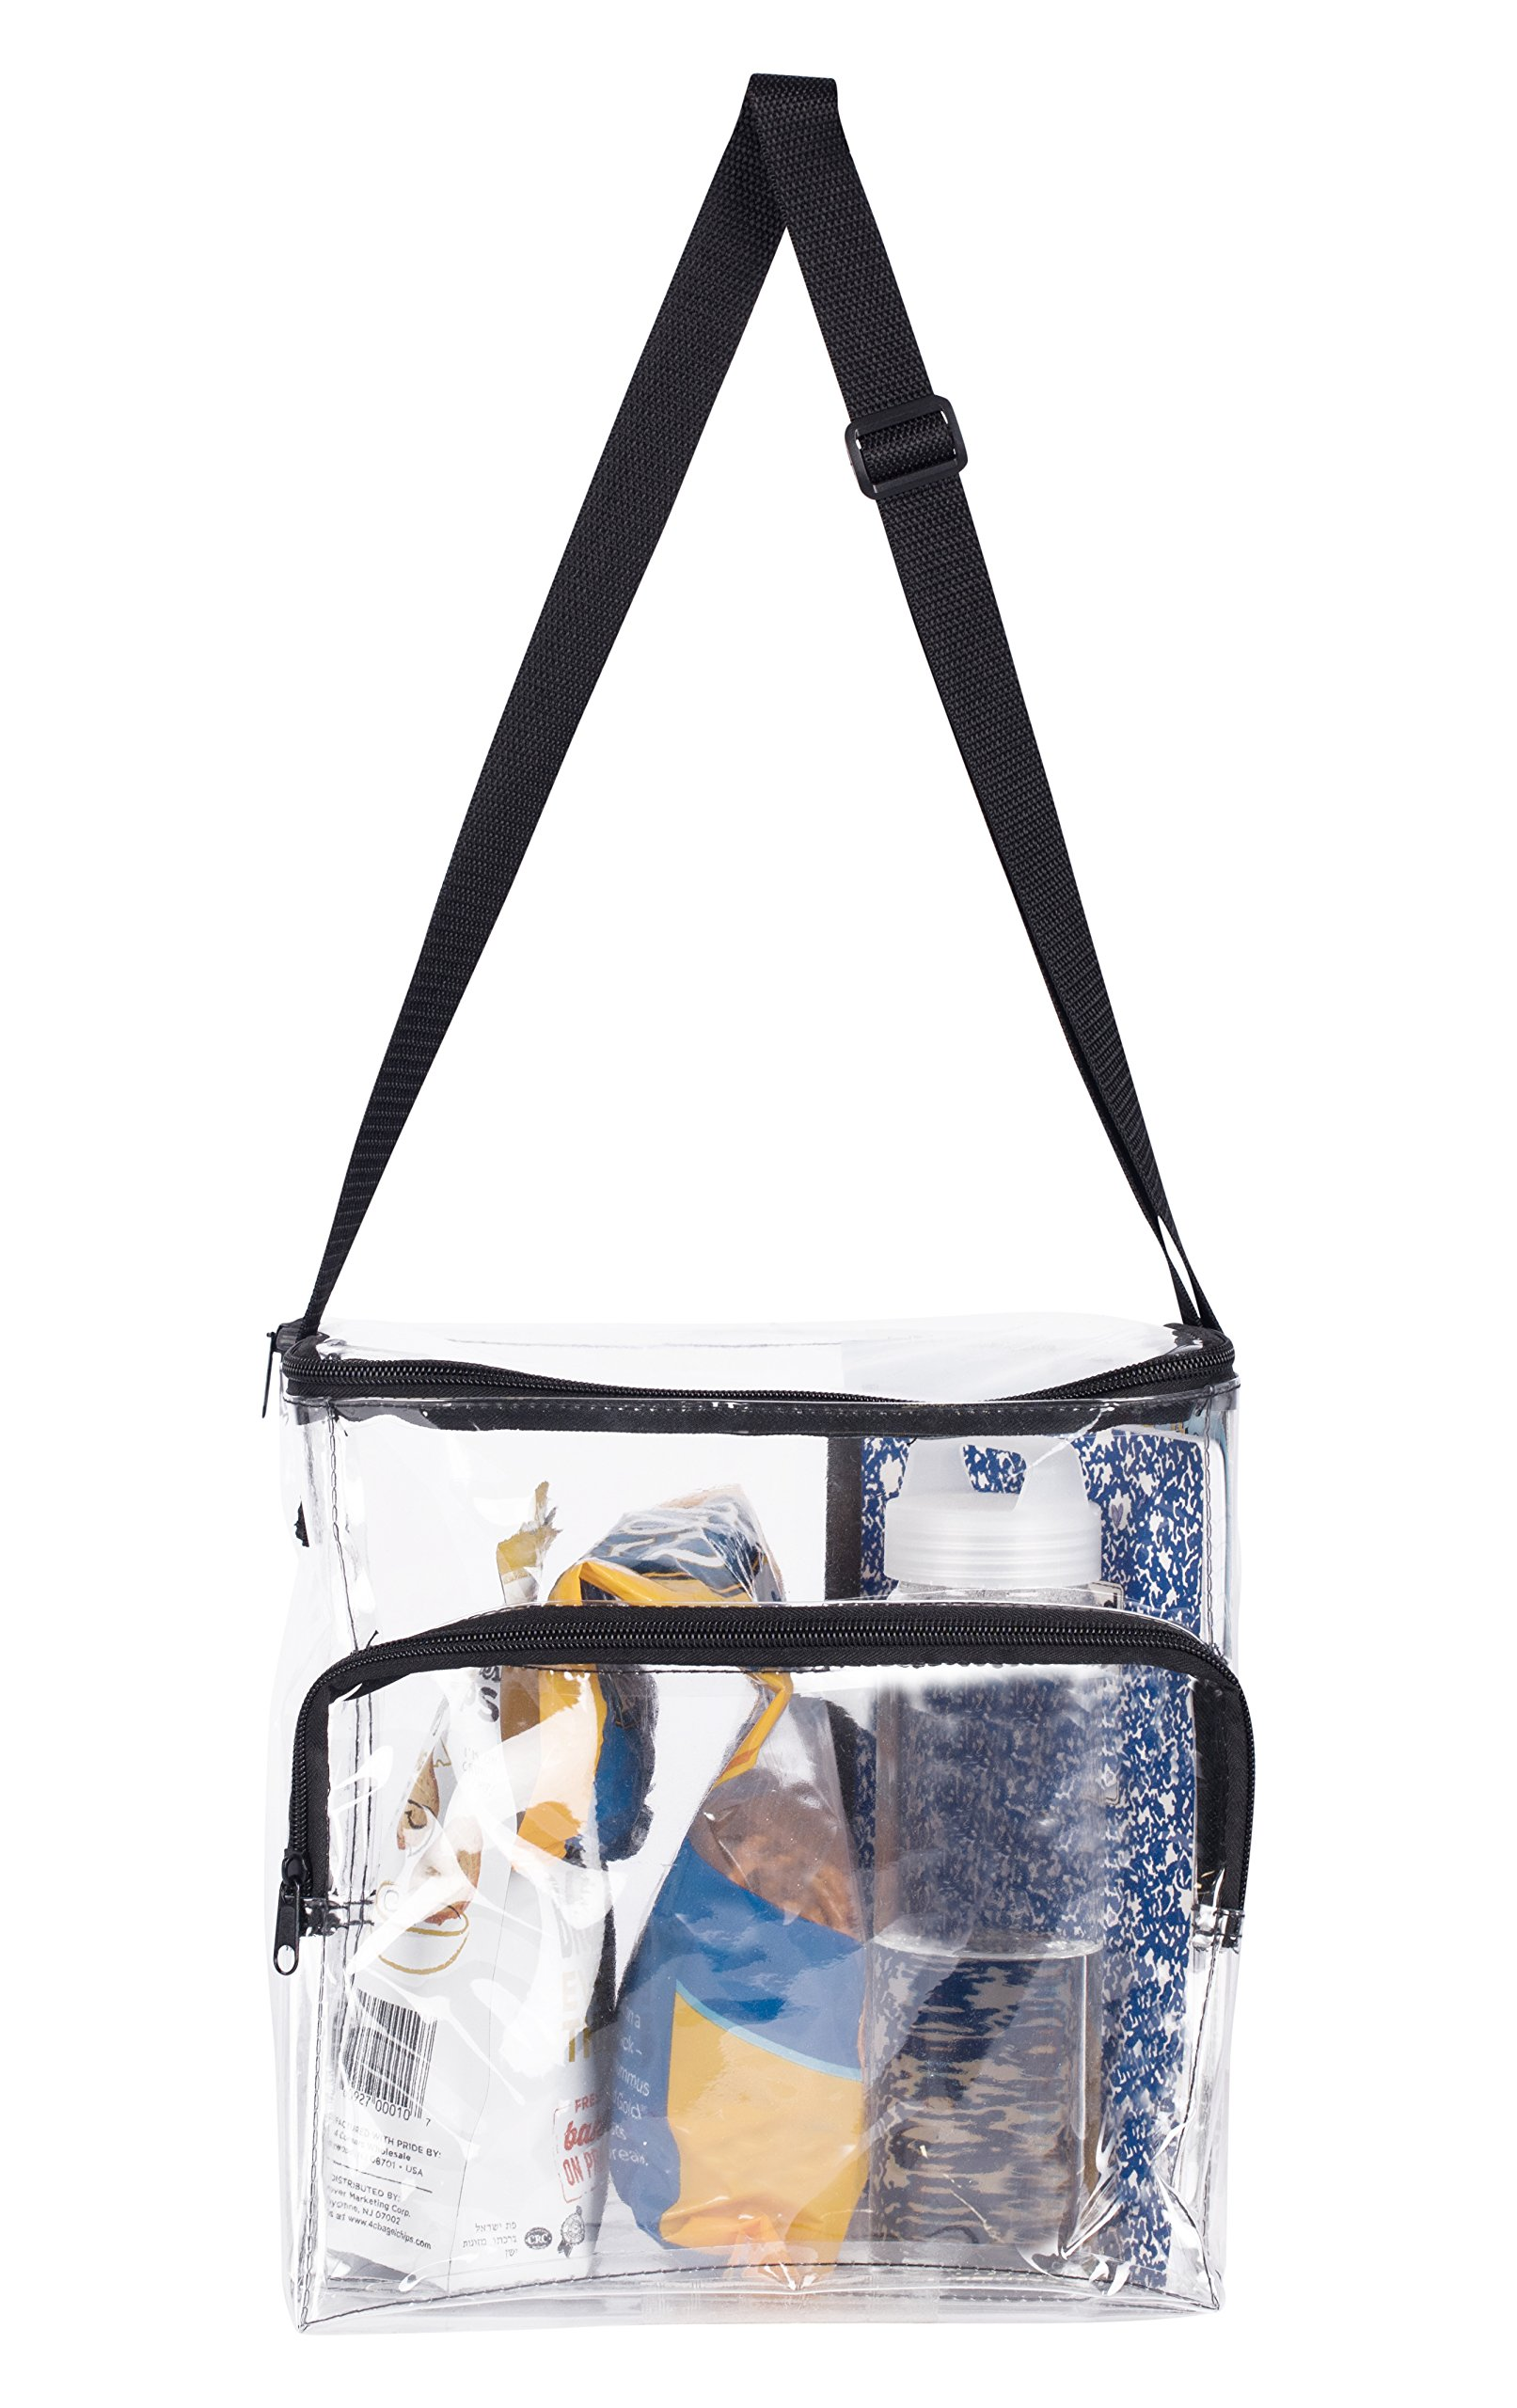 b75c12a8c7 Large Lunch Bag Stadium Security Approved Clear Lunch Box with Adjustable  Strap   Front Zippered Pocket